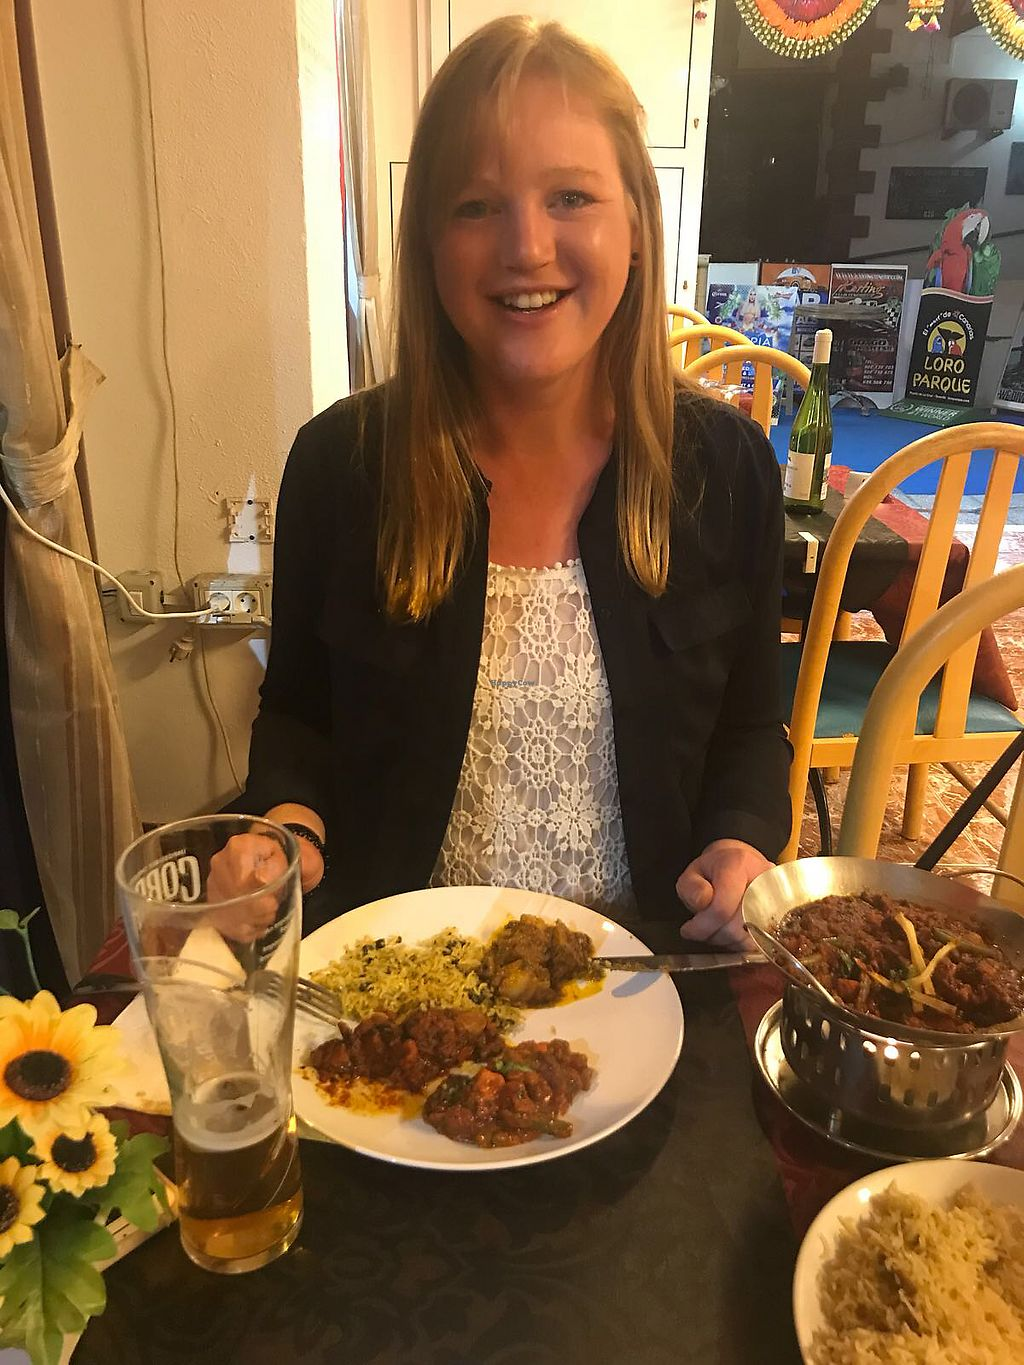 """Photo of Mayas Tandoori and Curry House  by <a href=""""/members/profile/CindyKuper"""">CindyKuper</a> <br/>Happy girl <br/> February 20, 2018  - <a href='/contact/abuse/image/105499/361825'>Report</a>"""